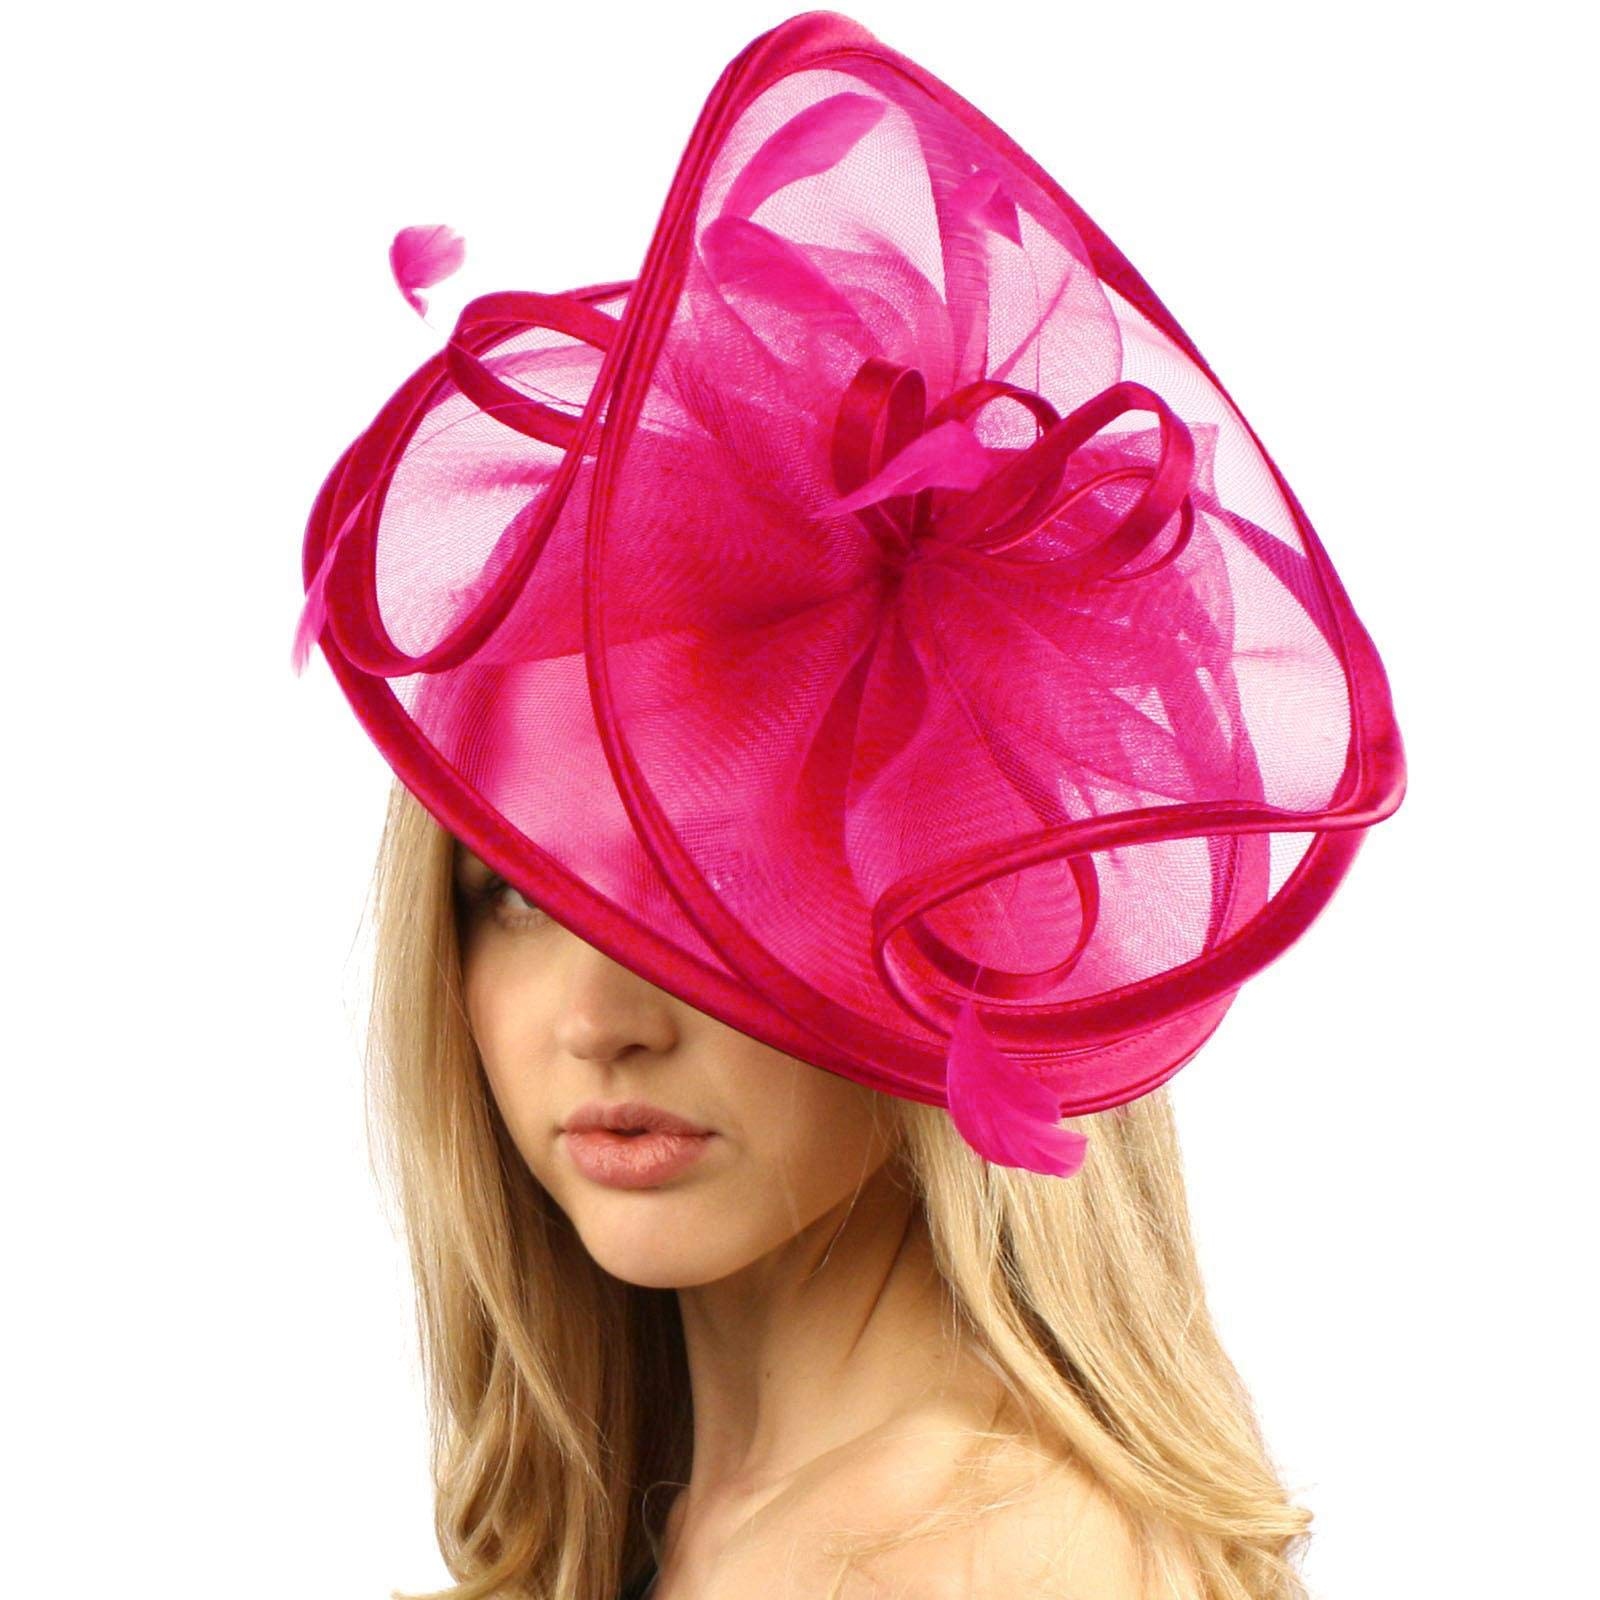 Feathers 3 Tier Layer 2 Tone Headband Fascinator Millinery Cocktail Hat Solid Hot Pink by SK Hat shop